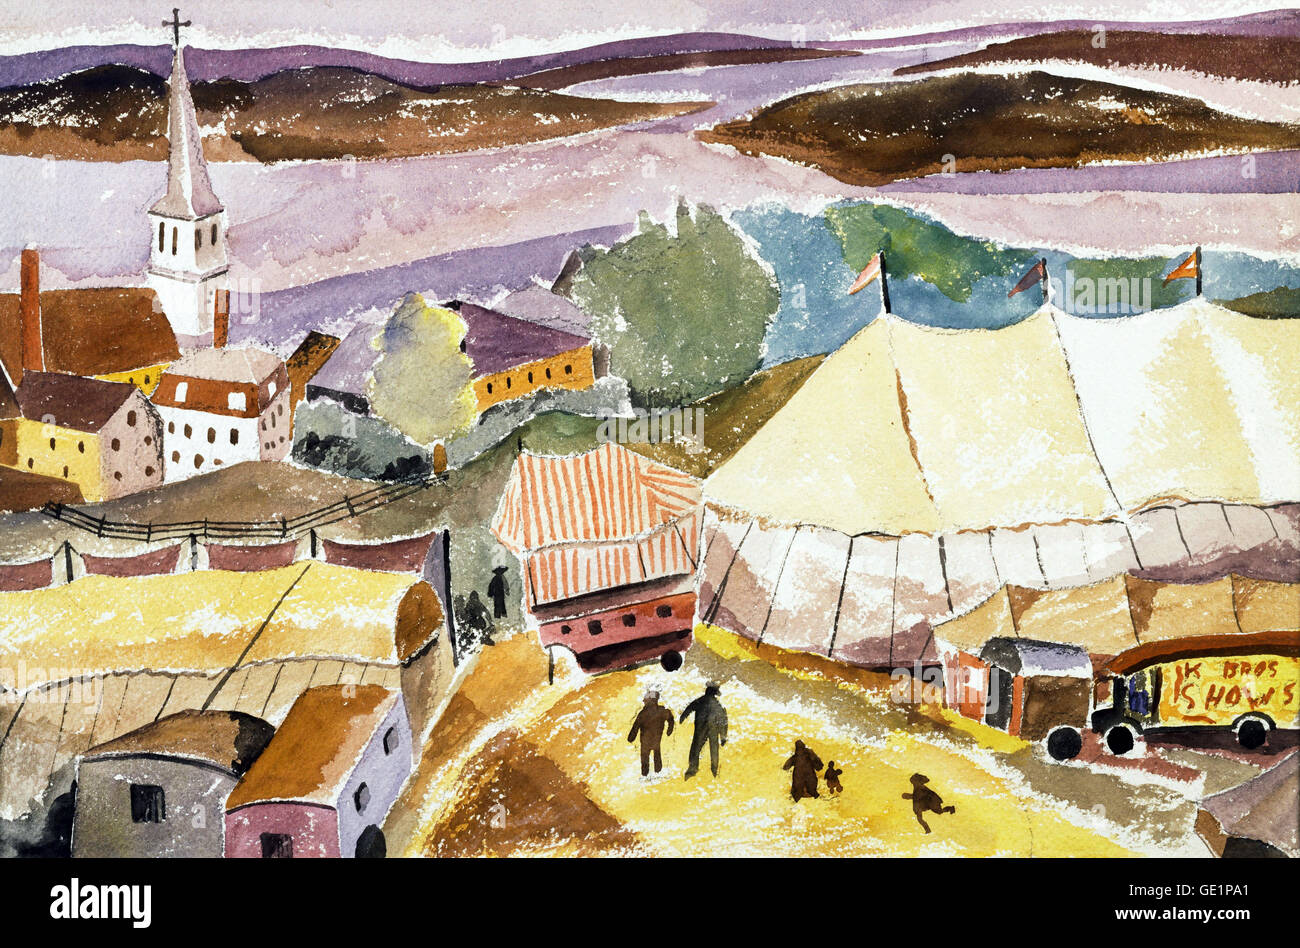 Hugh Collins, The Circus Comes to Treport. Undated. Watercolor on paper. The Phillips Collection, Washington, D.C., - Stock Image